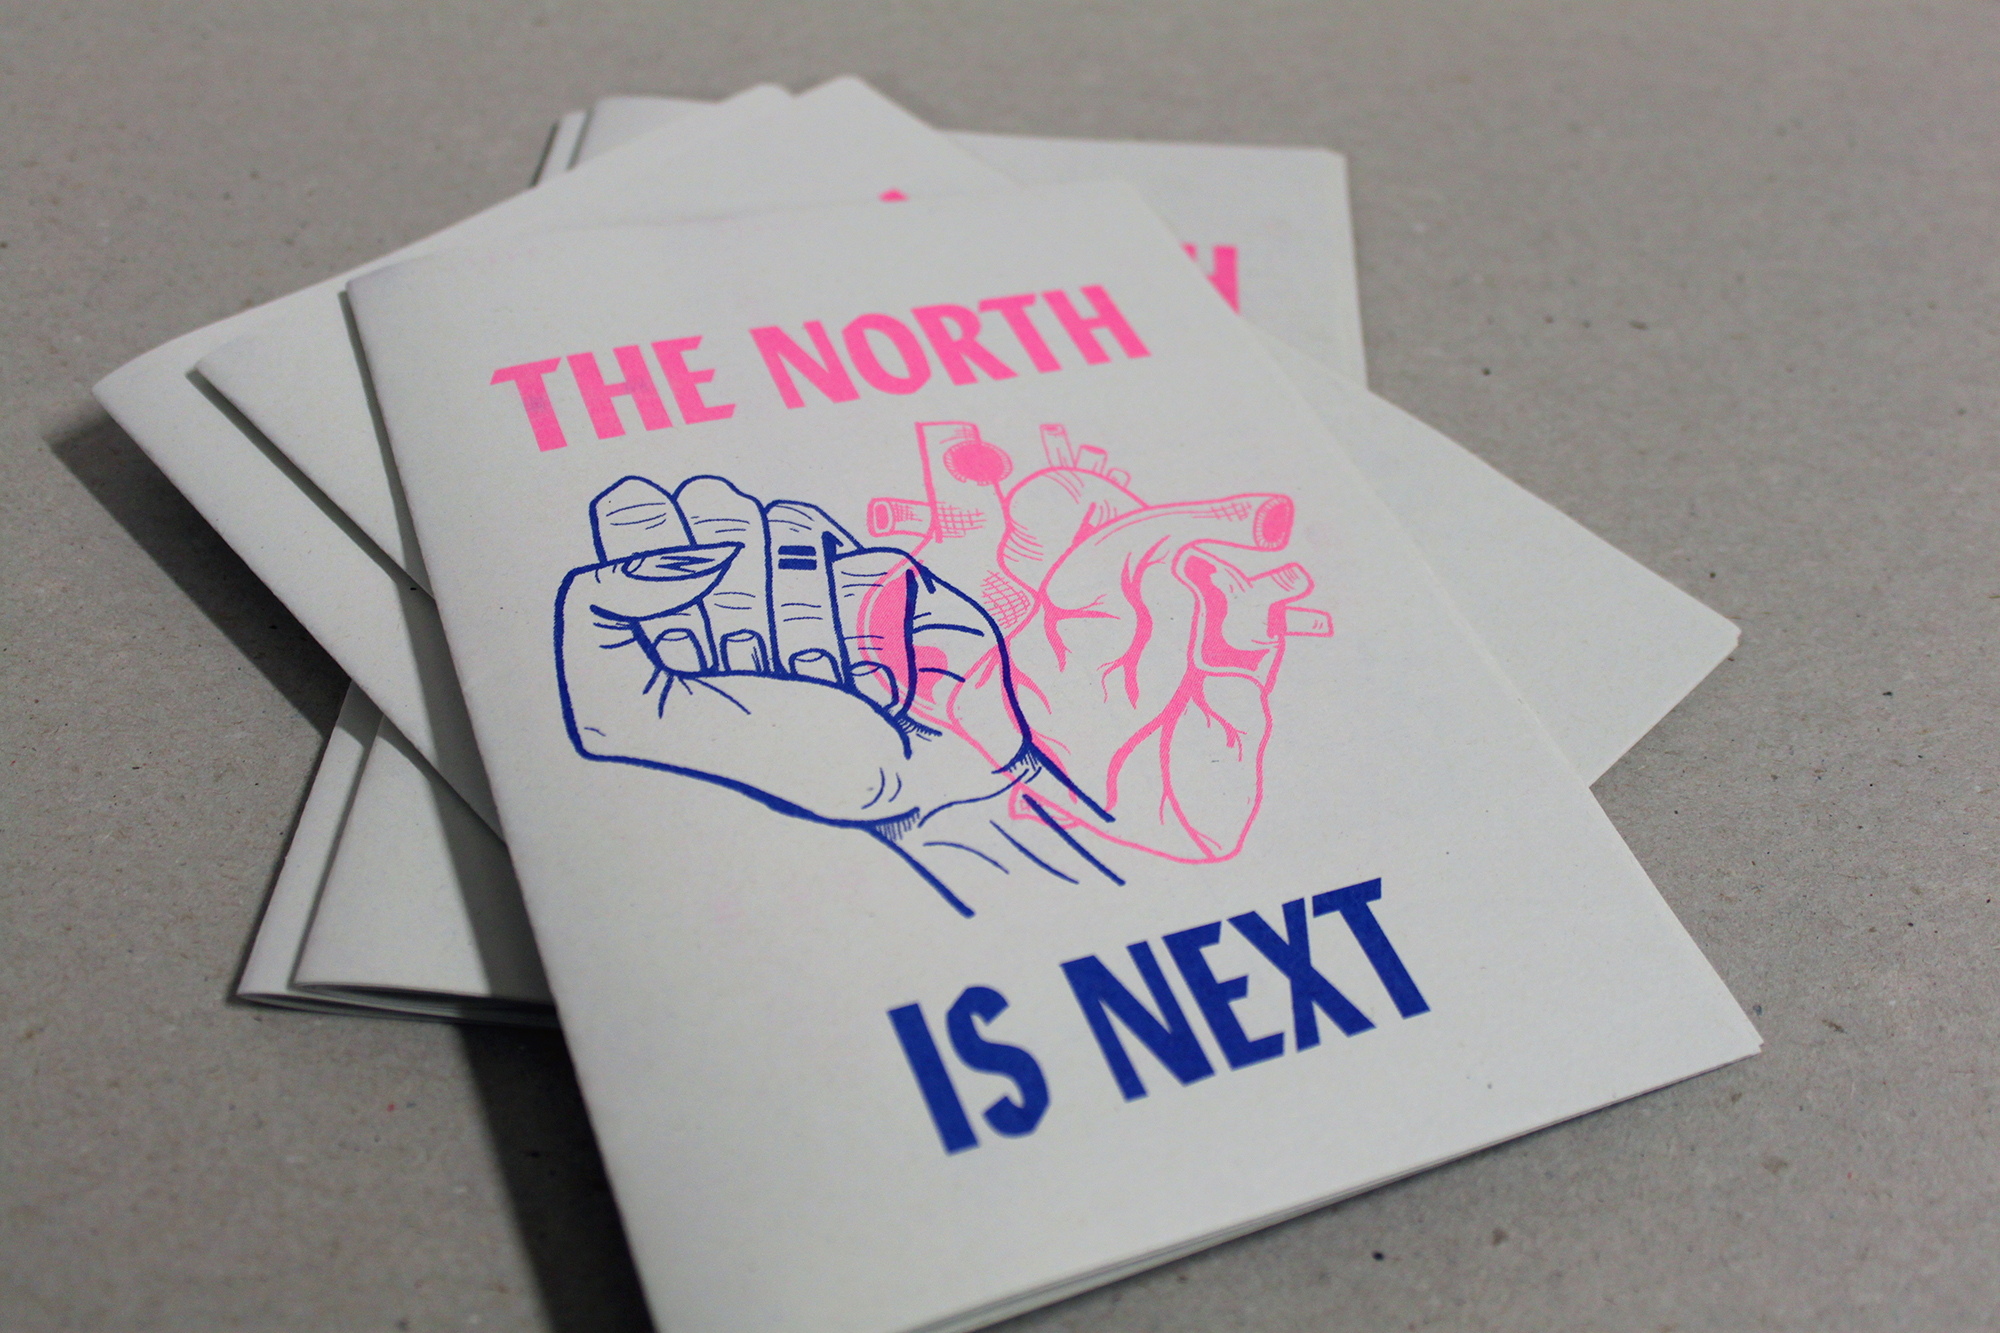 Cover image: The North is Next